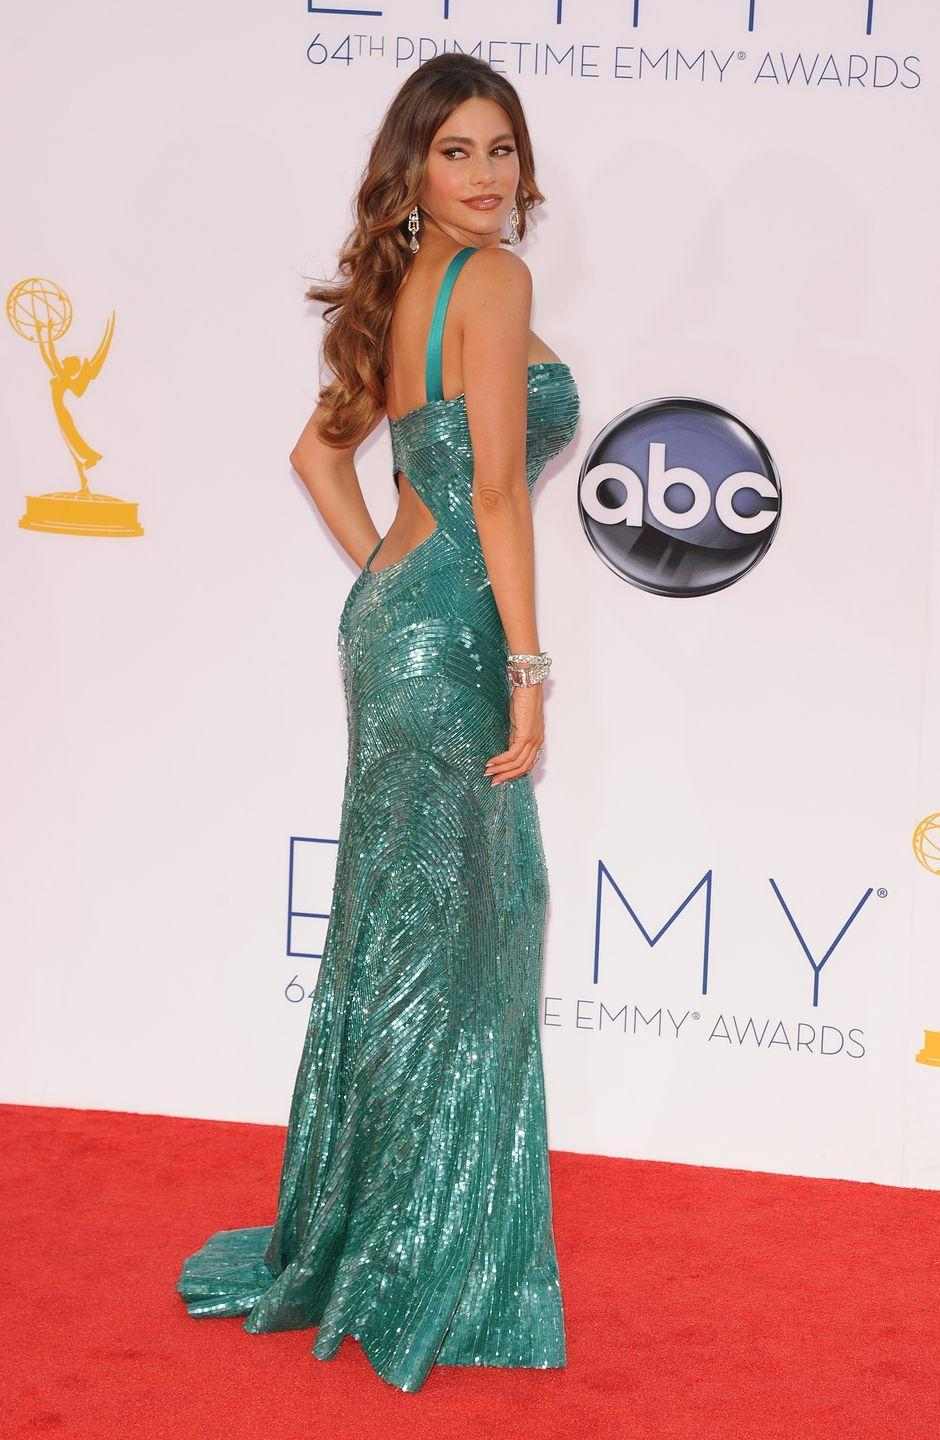 "<p>This teal sequin number with its back cutout and plunging neckline was definitely a showstopper. The dress ended up ripping down the back in a <a href=""https://www.thedailybeast.com/sofia-vergaras-wardrobe-malfunction-at-the-emmys-didnt-slow-her-down"" rel=""nofollow noopener"" target=""_blank"" data-ylk=""slk:hilarious wardrobe malfunction"" class=""link rapid-noclick-resp"">hilarious wardrobe malfunction</a>, but was thankfully fixed right before she went up on stage with the rest of her <em>Modern Family </em>co-stars. </p>"